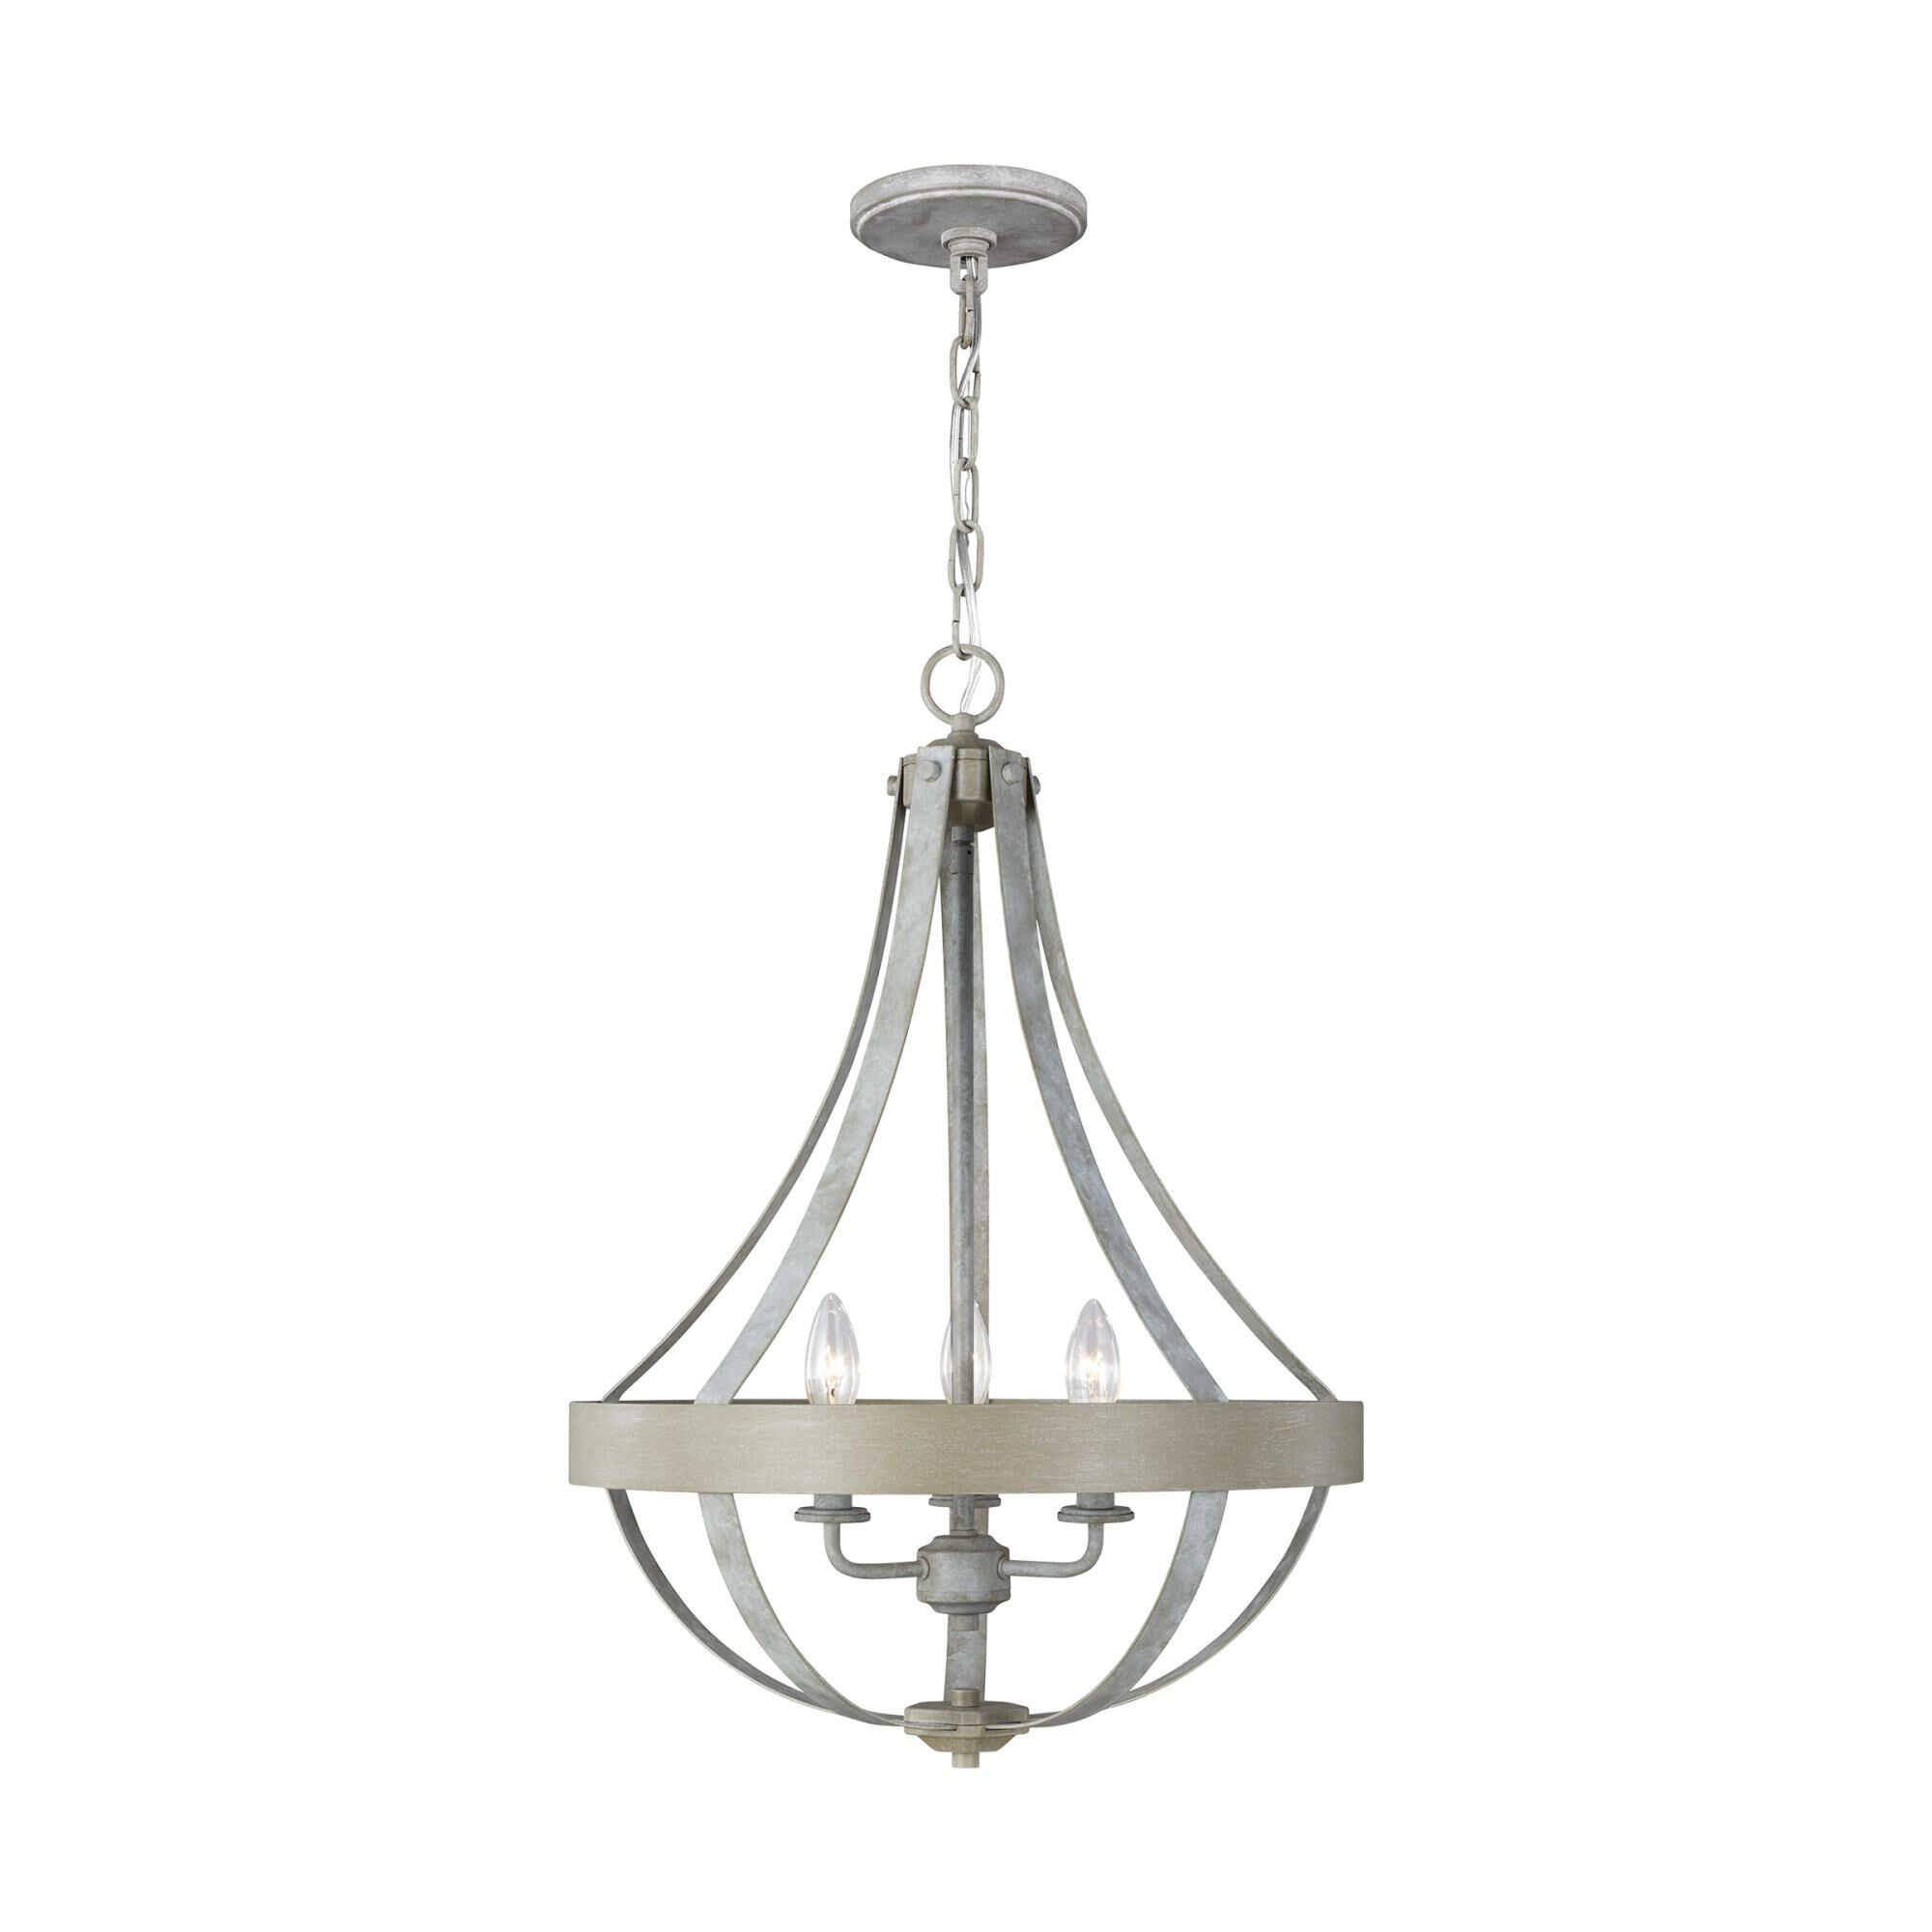 Sea Gull Lighting® Oslo Five Light Chandelier Chrome 9.5